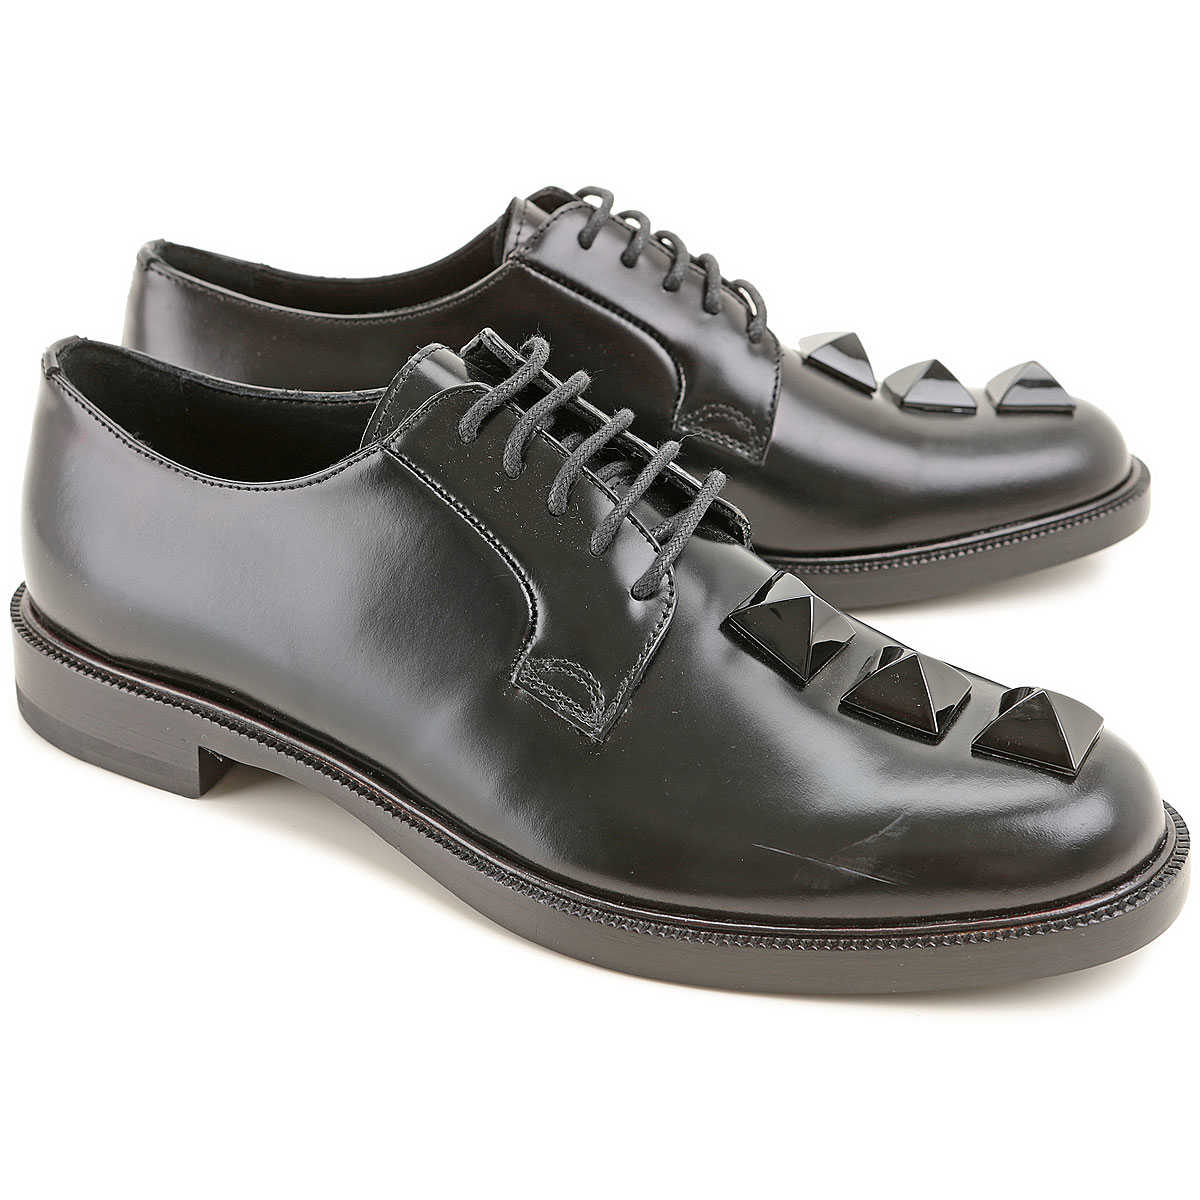 Giacomorelli Lace Up Shoes for Men Oxfords